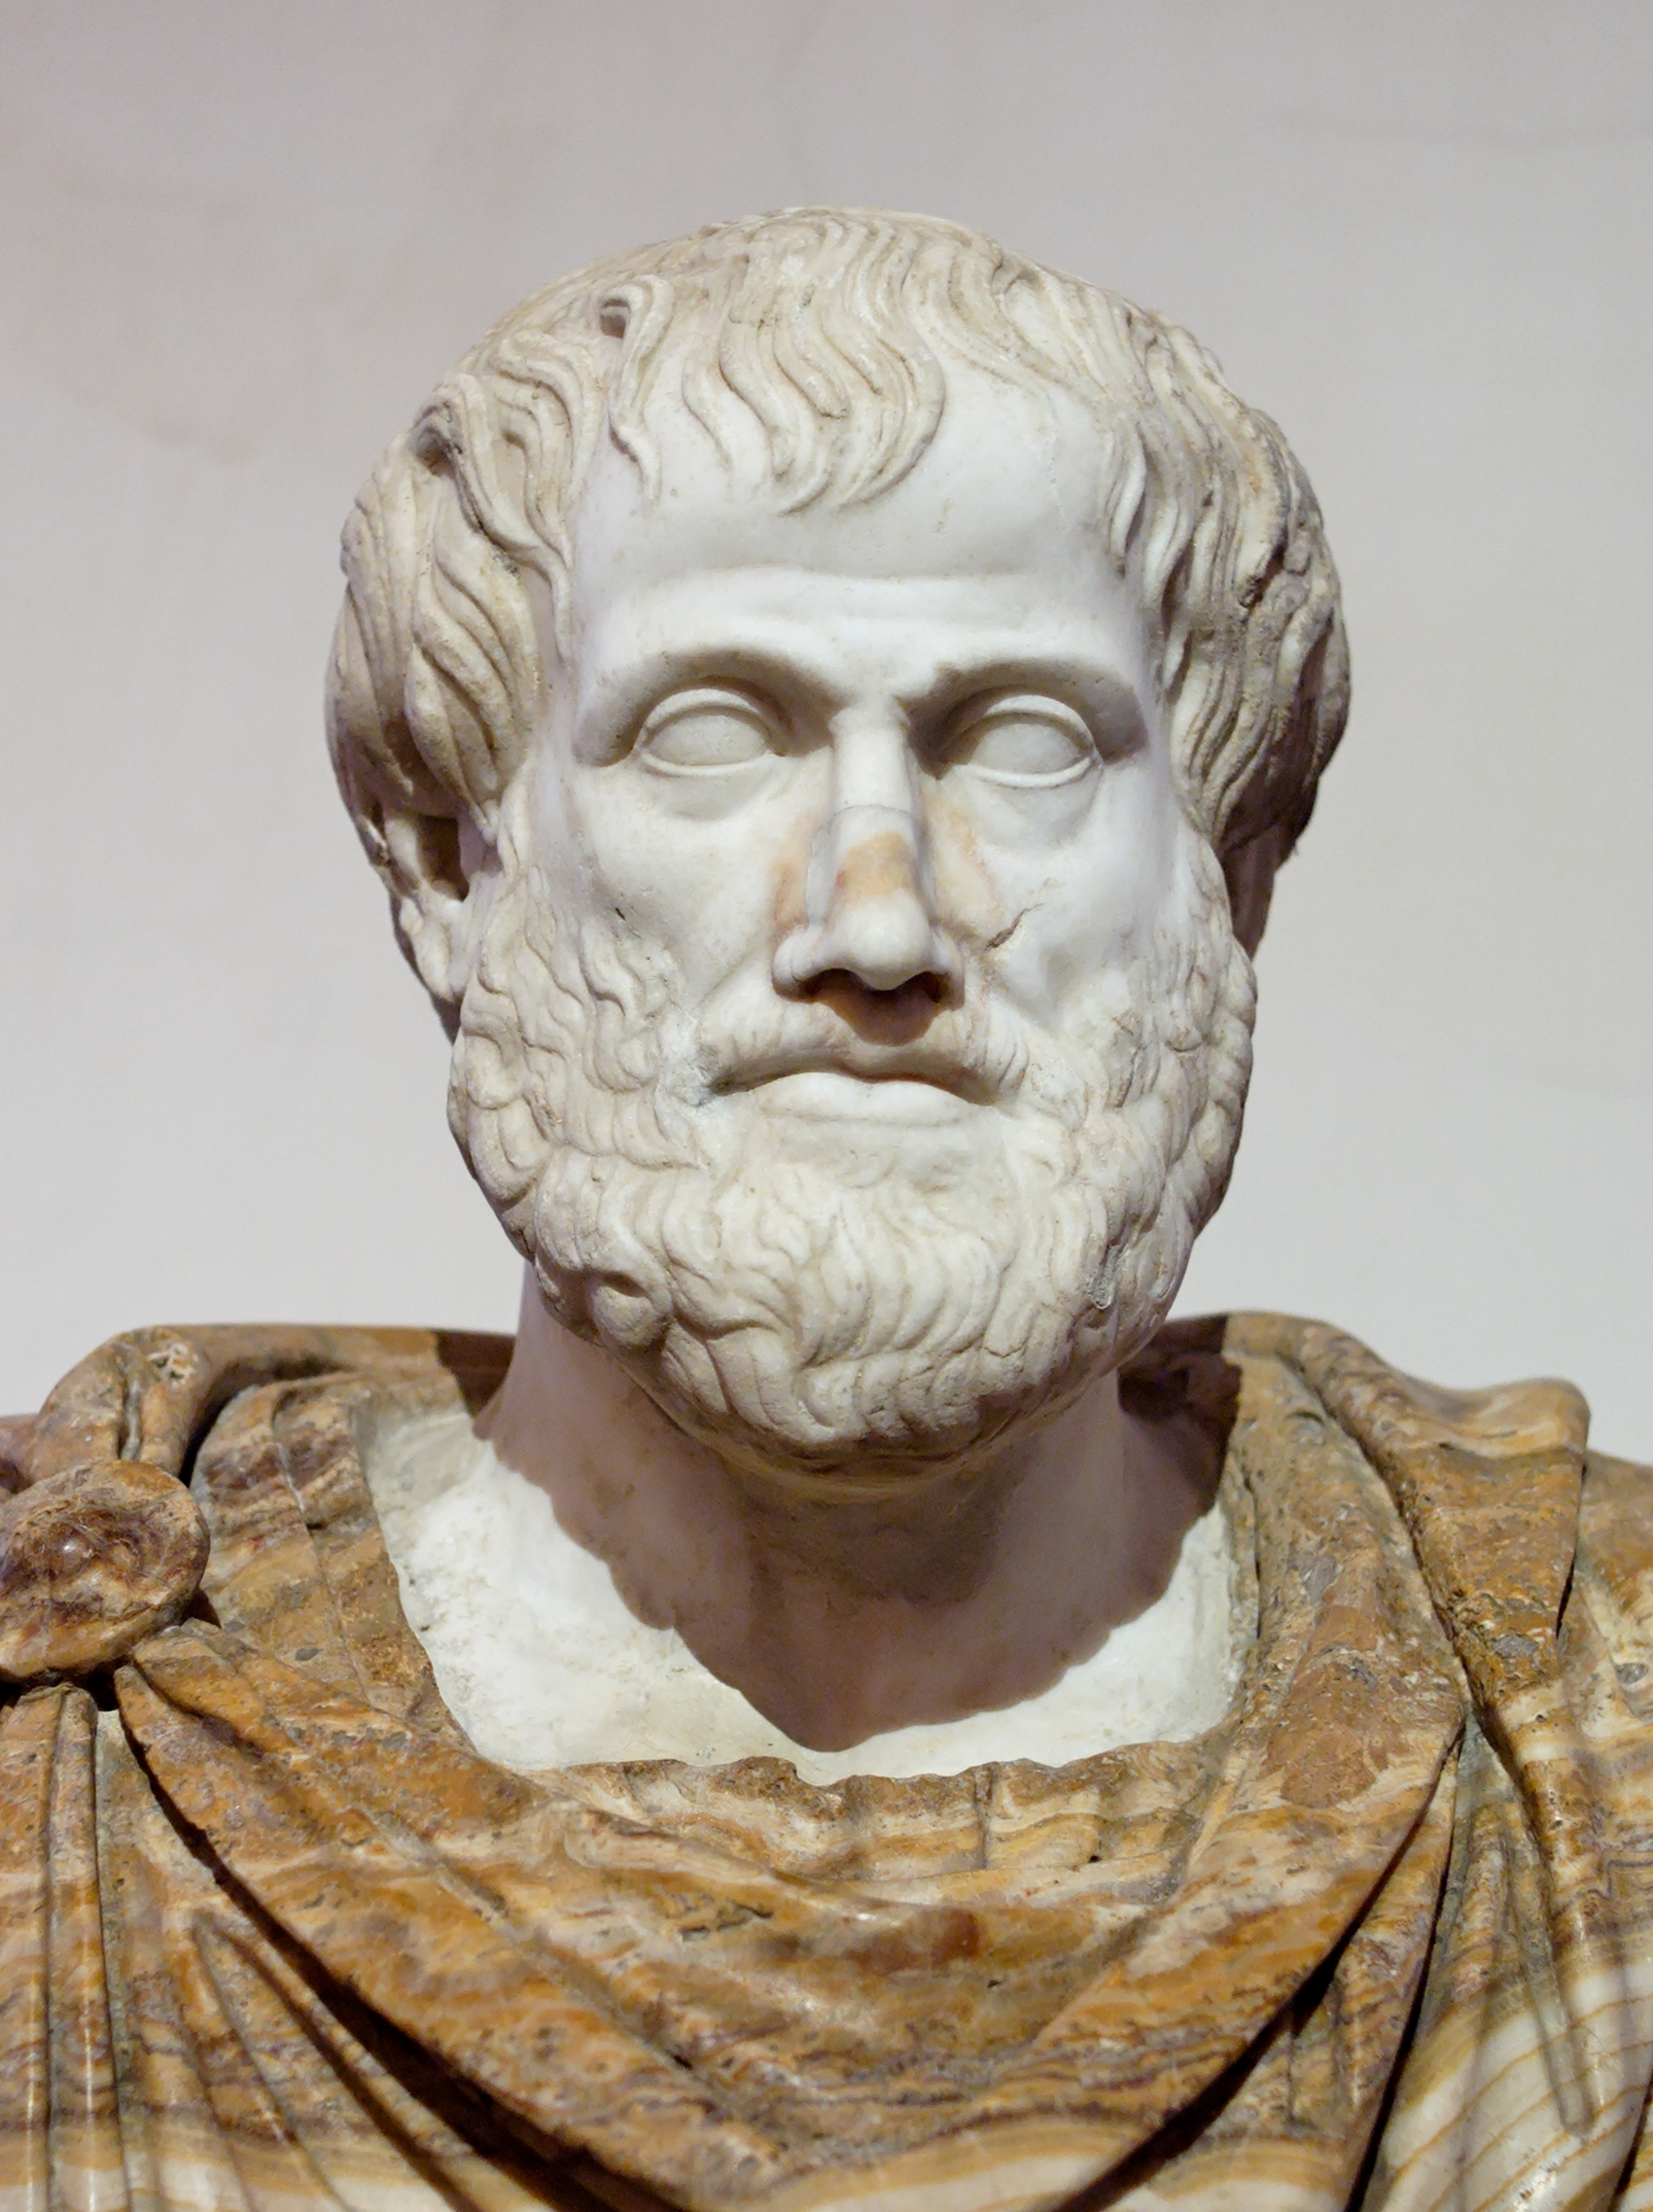 Bust of Aristotle - a teacher of ancient rhetoric